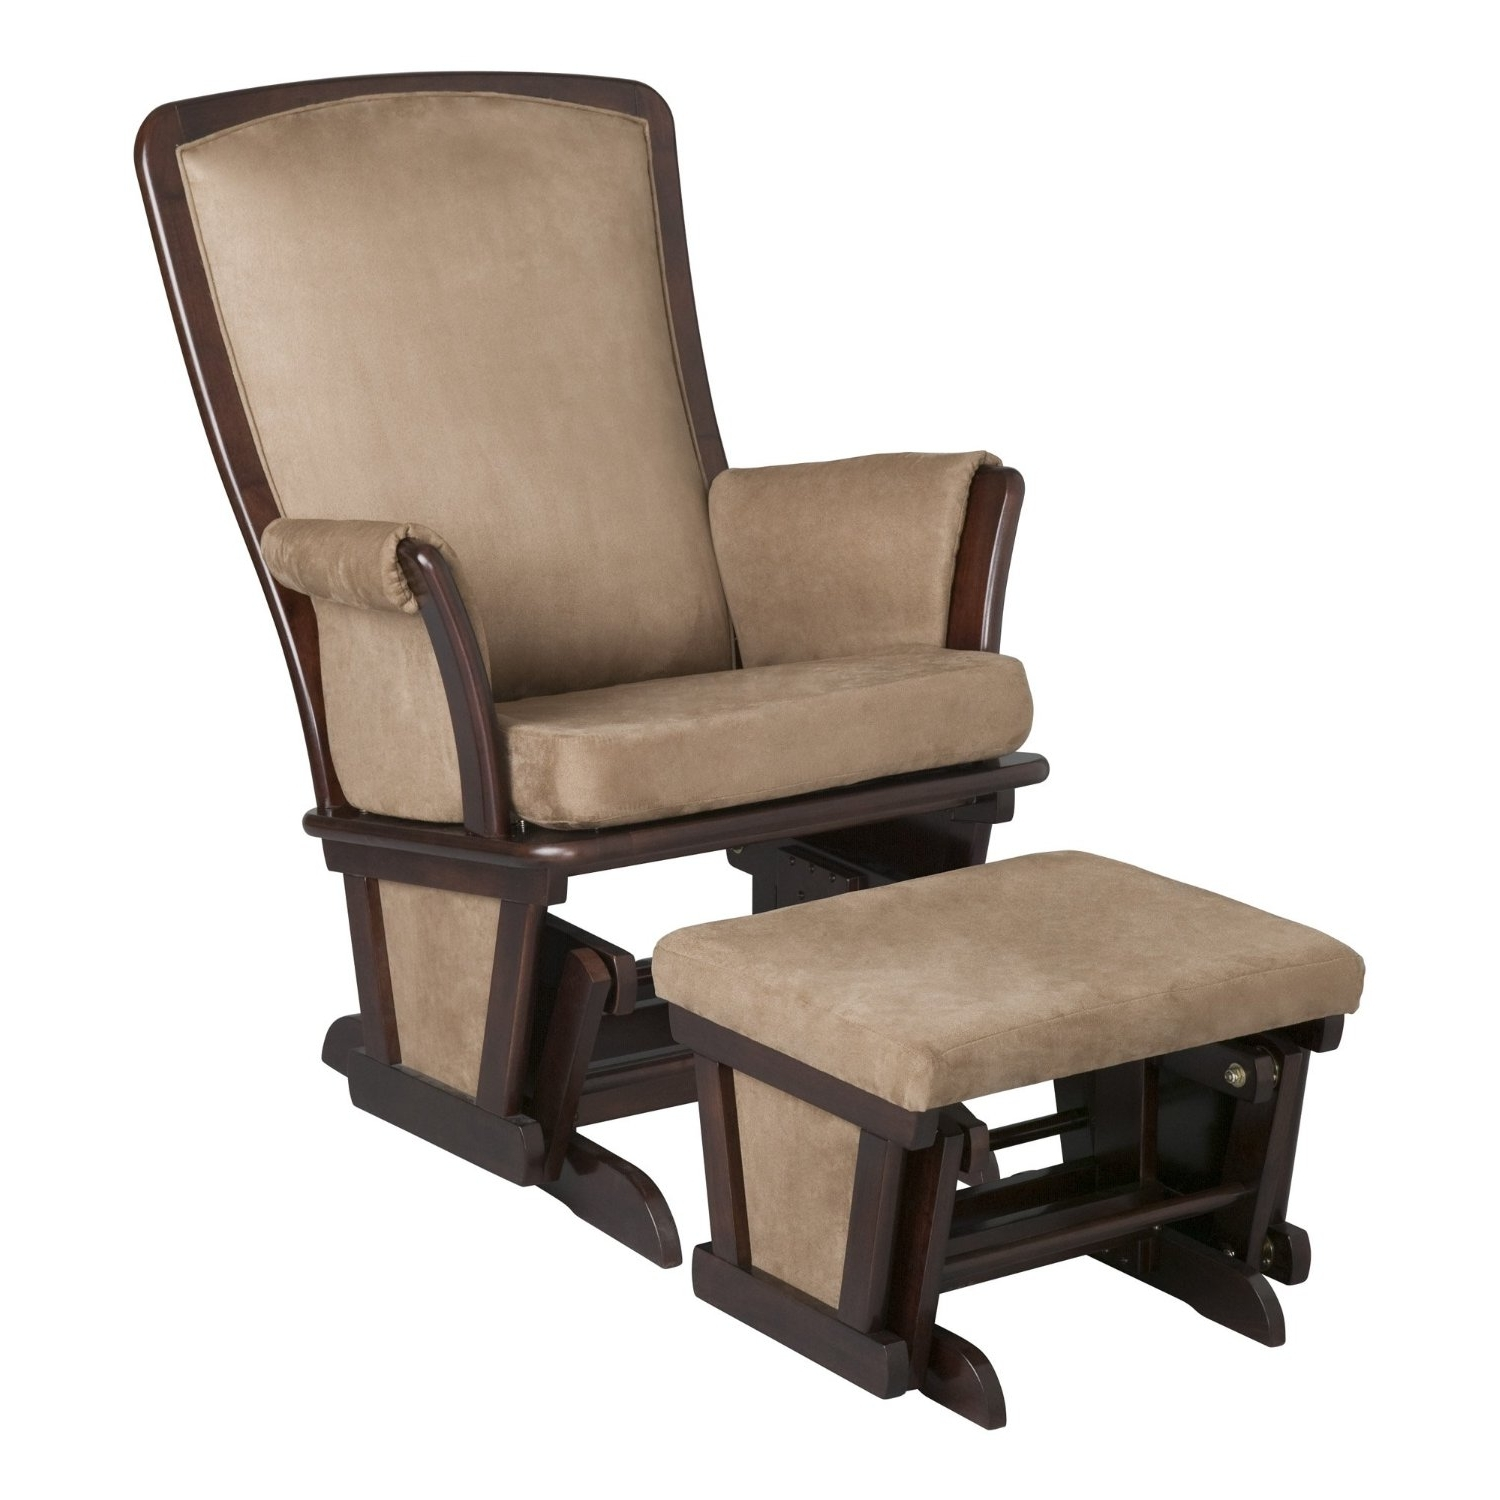 Rocking Chairs With Ottoman With Regard To Most Recent Furniture: Best Rated Nursery Gliders,rocking Chairs Reviews (View 5 of 15)